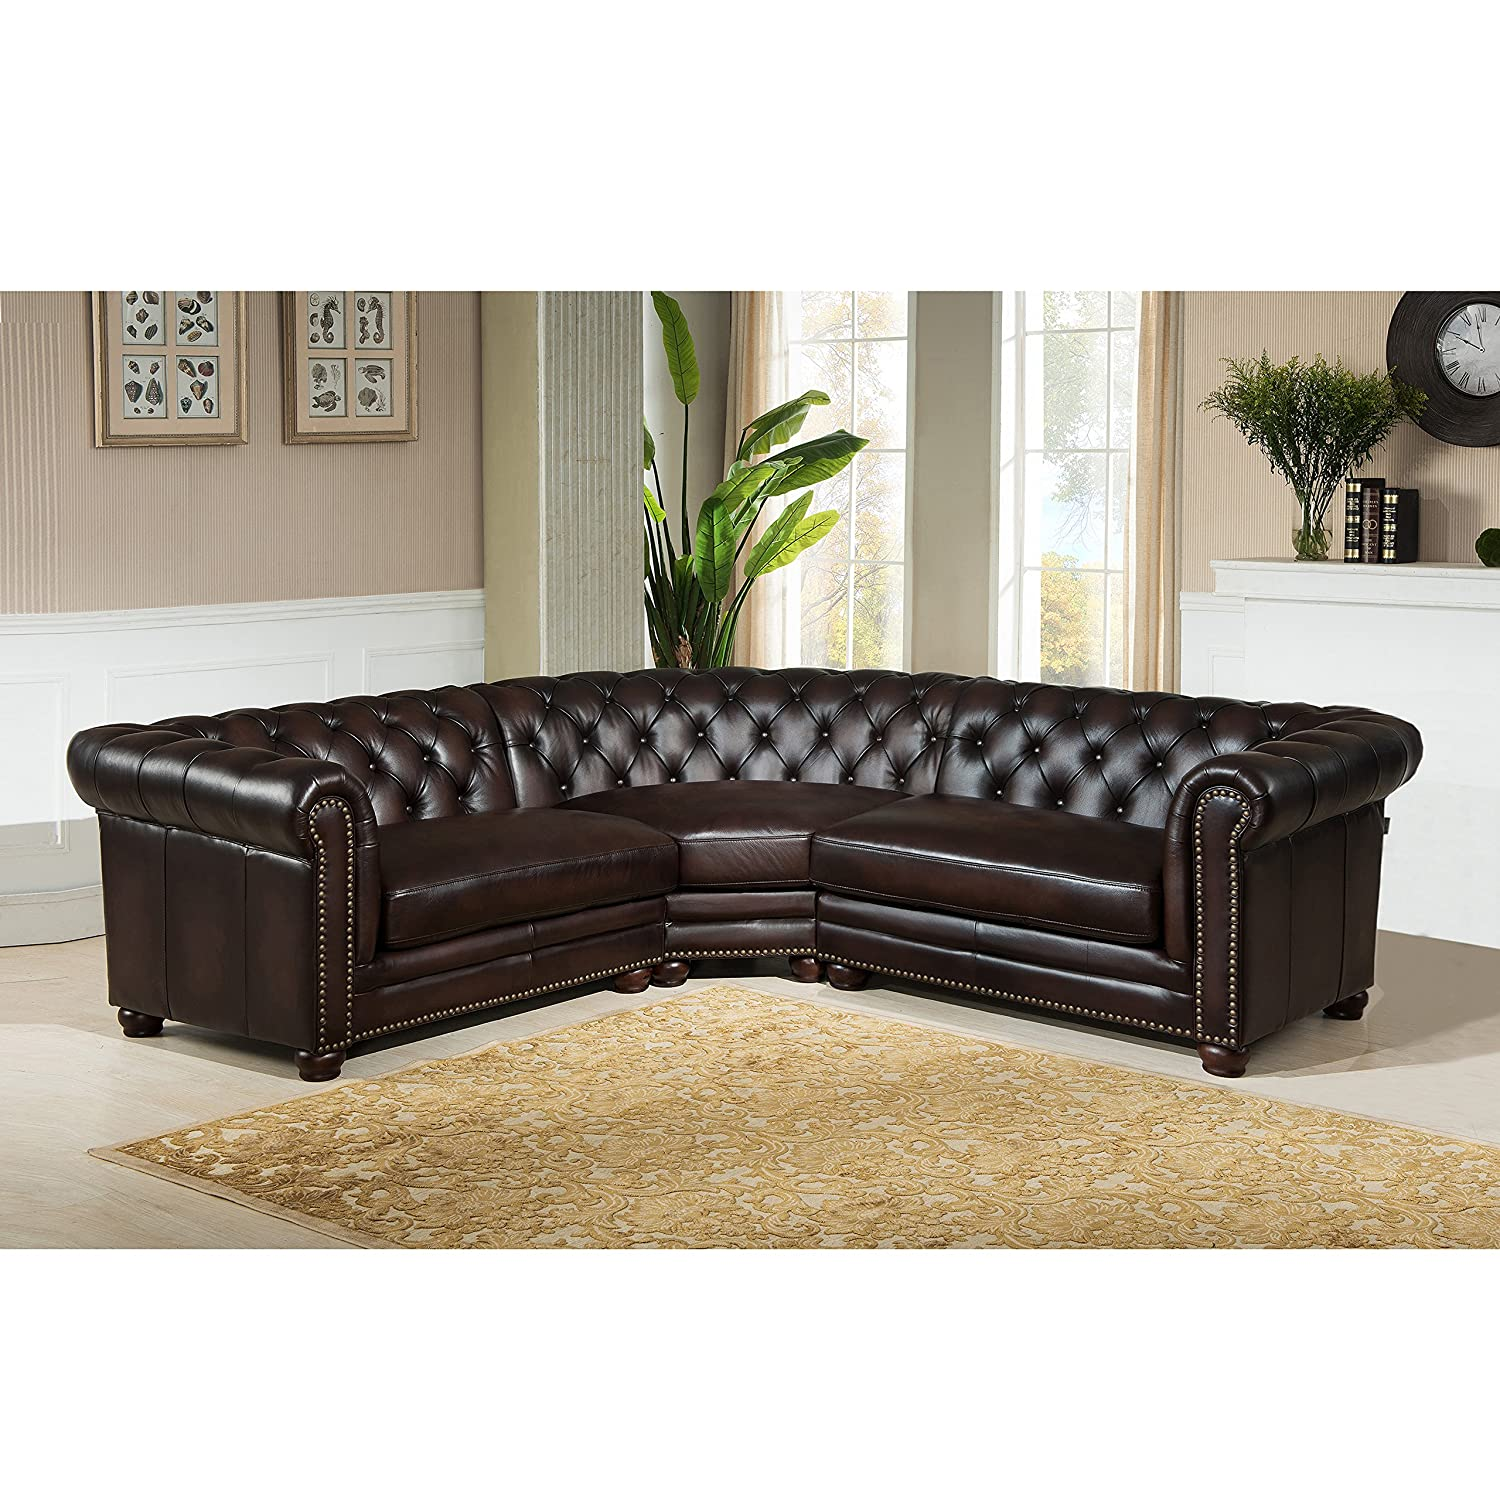 Amazon Amax Leather Kennedy 100% Leather 3 Piece Sectional